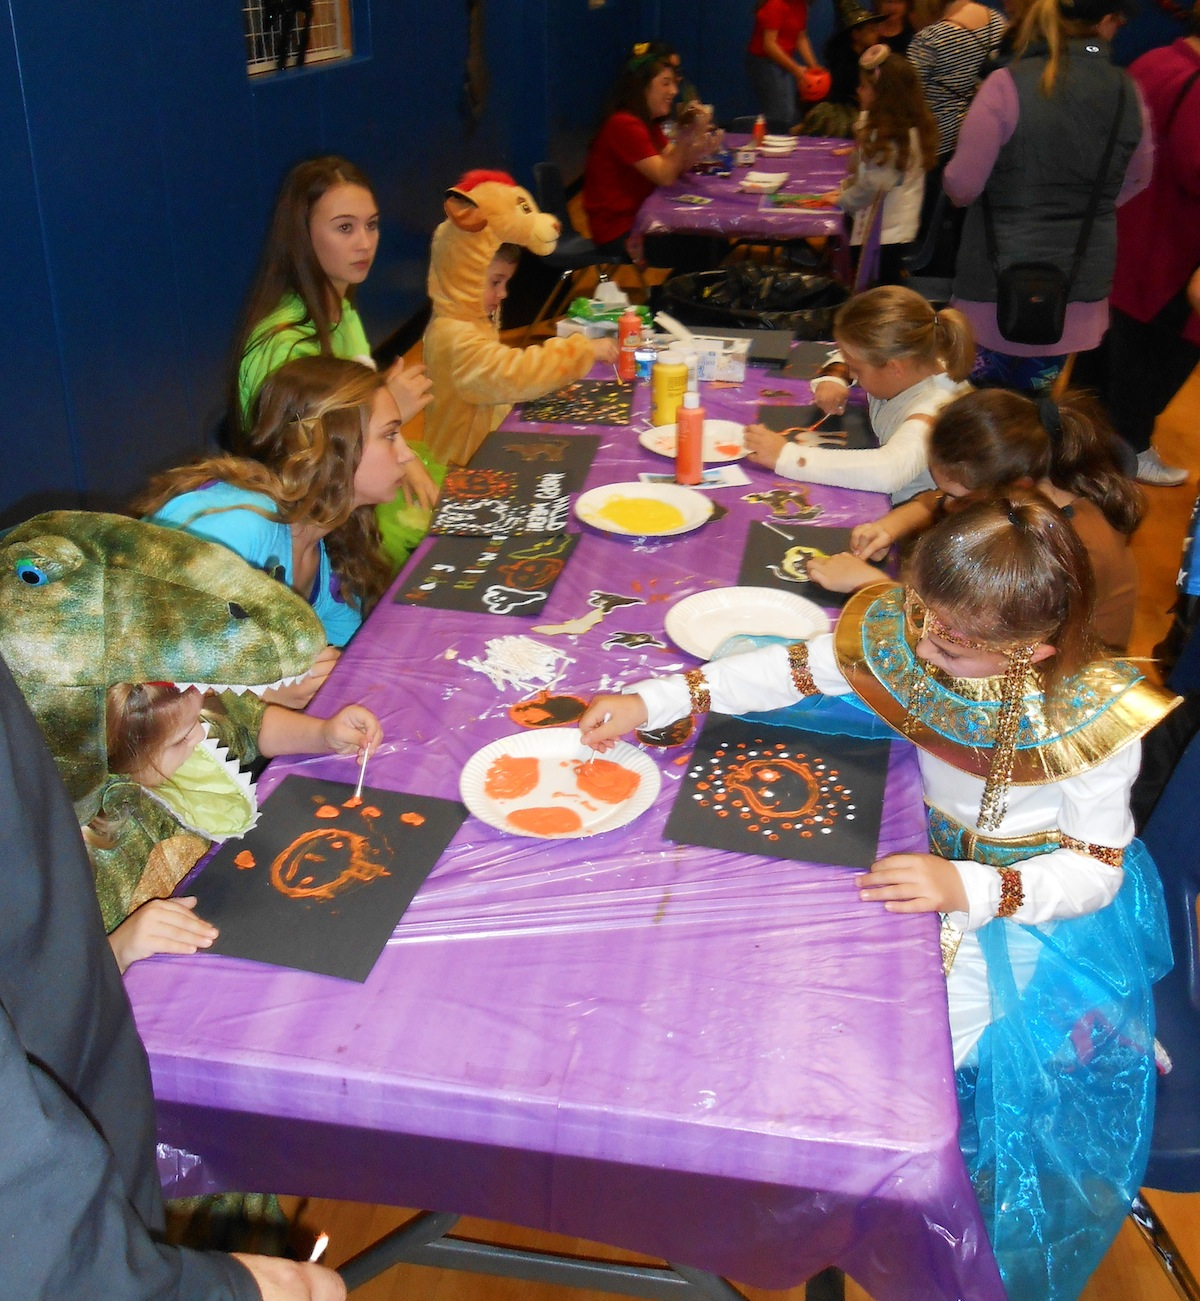 Pictured are scenes from last year's Halloween party at the Wheatfield Youth Center. (Photos submitted by Justin Higner)